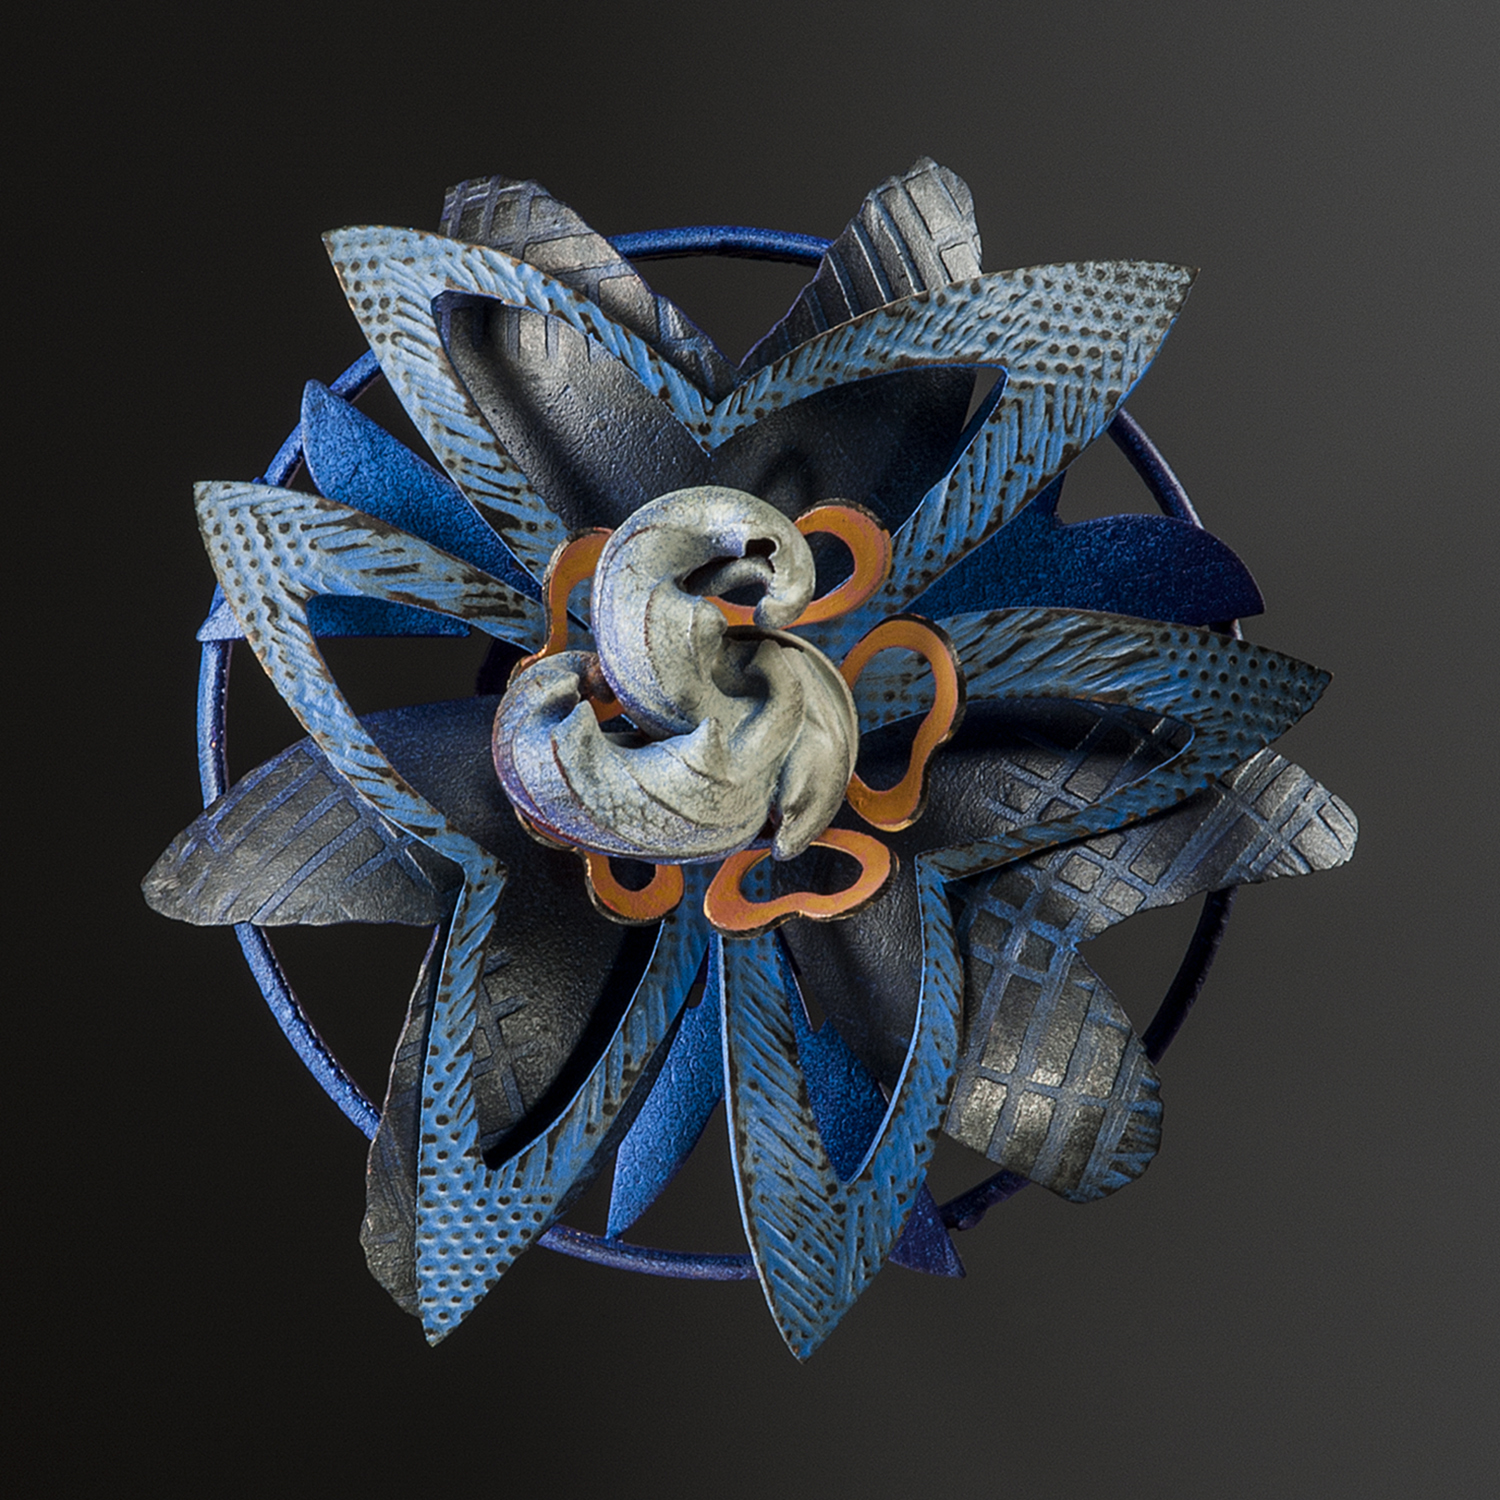 Rosette Brooch 4-14  |  2014  |  copper, brass, polymer  |  3.75 x 3.75 x 1.25 inches